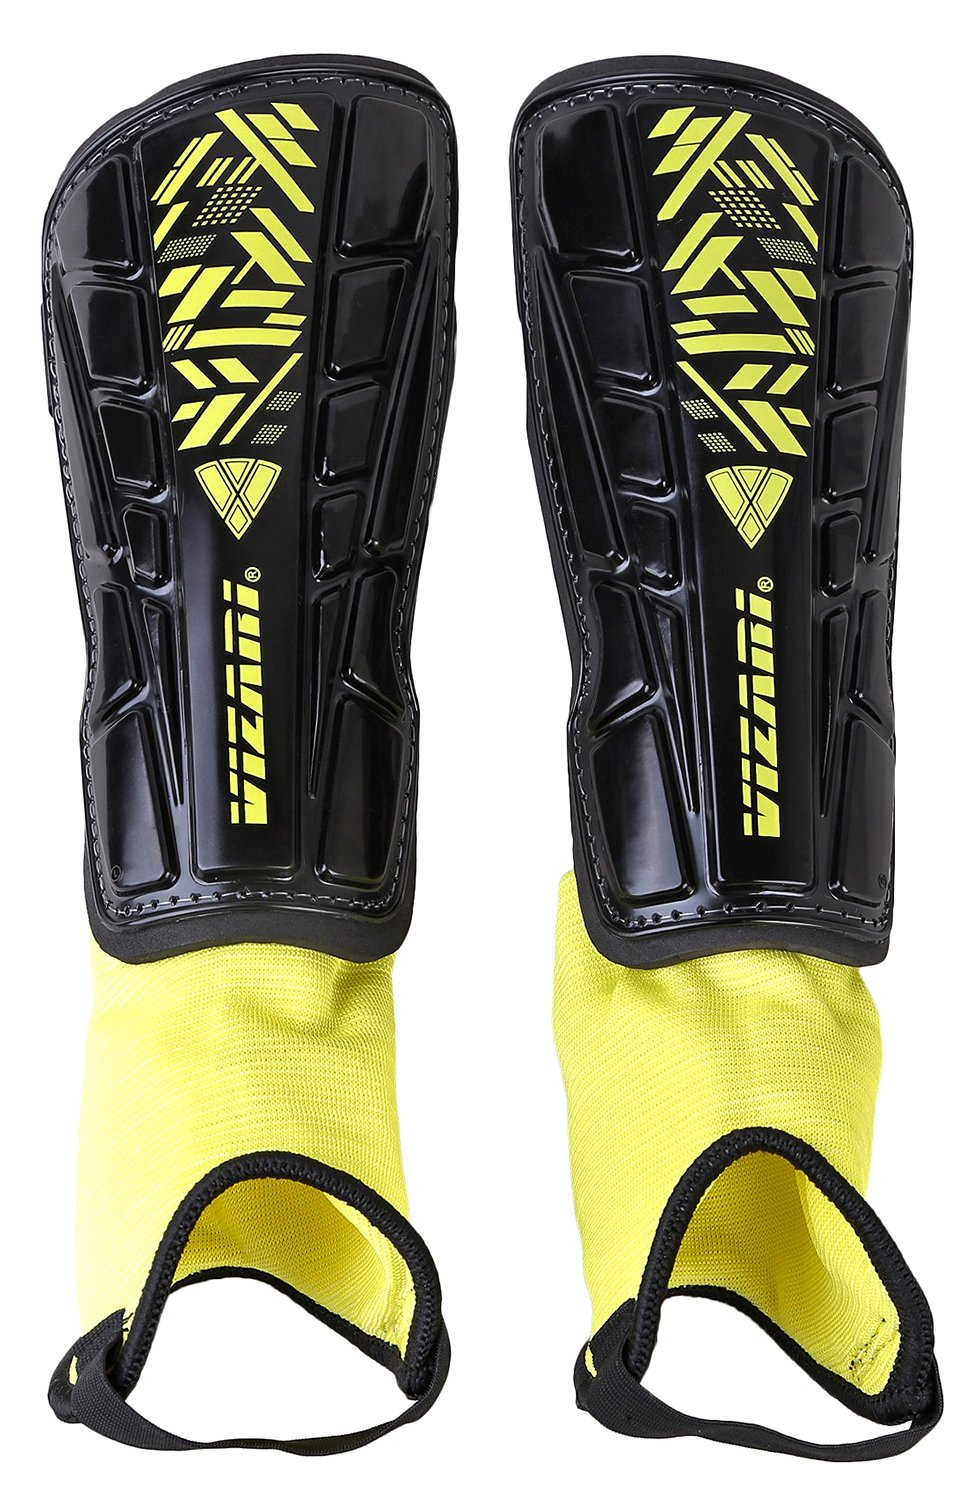 Vizari Malaga Soccer Shin Guards | Soccer Gear | Lightweight Protective Gear | Easily Adjustable Straps | Black/Yellow XXS